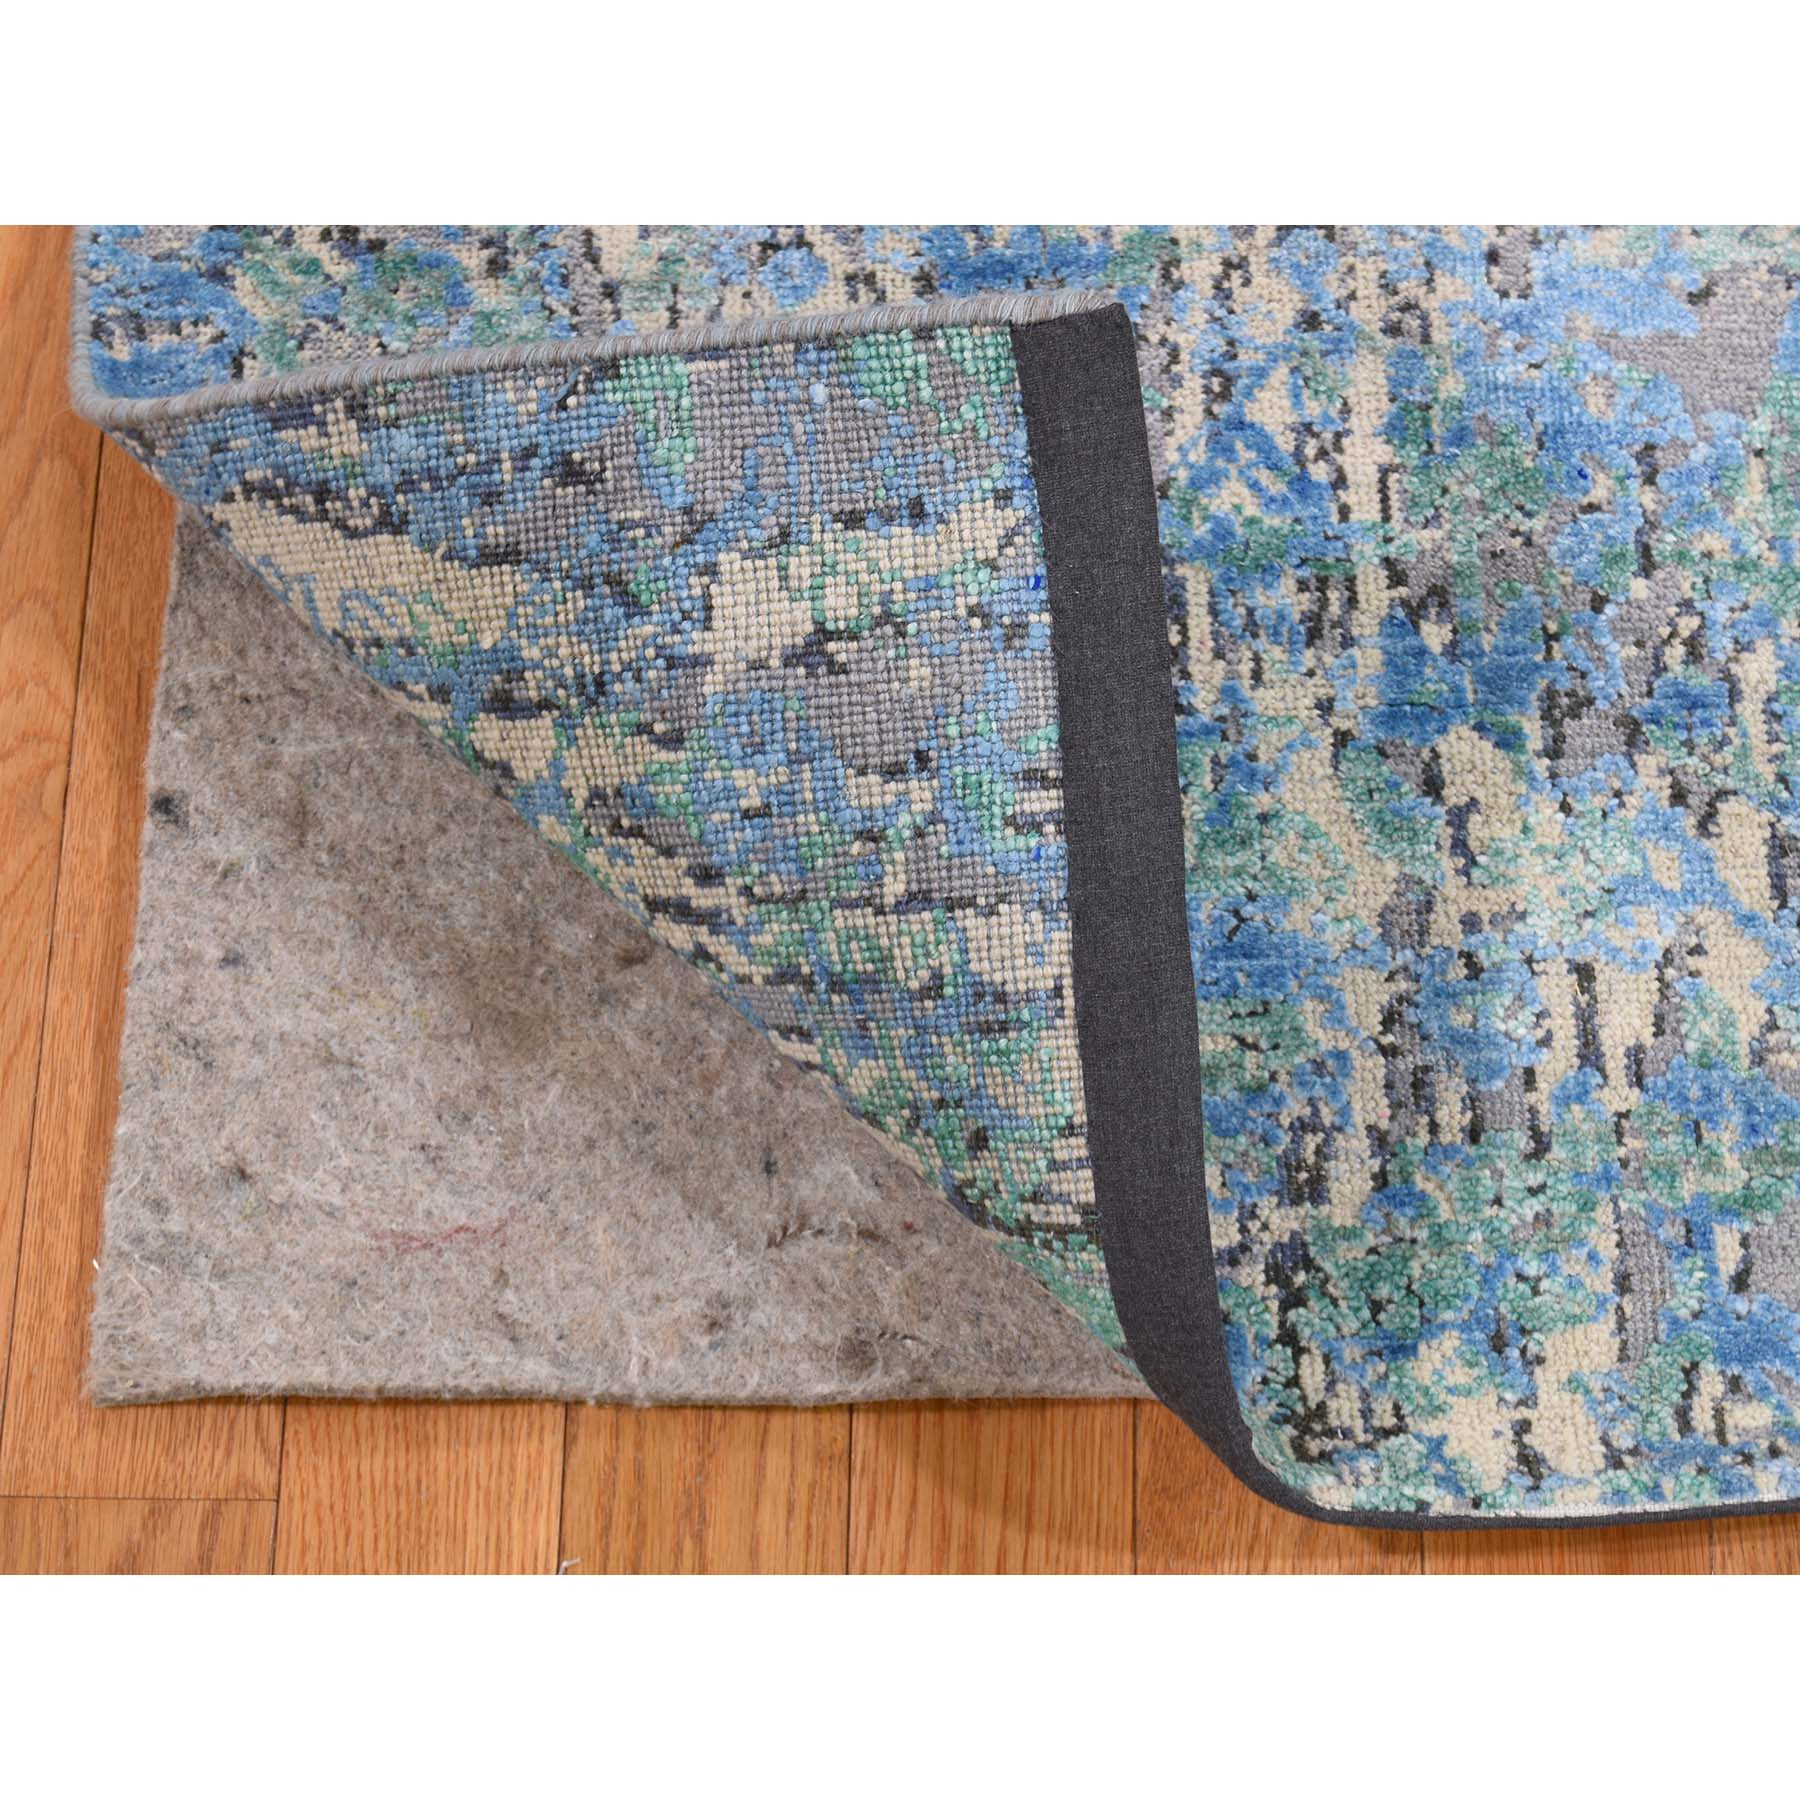 2-x3-1  THE WATER LILIES Silk With Textured Wool Hand-Knotted Oriental Rug